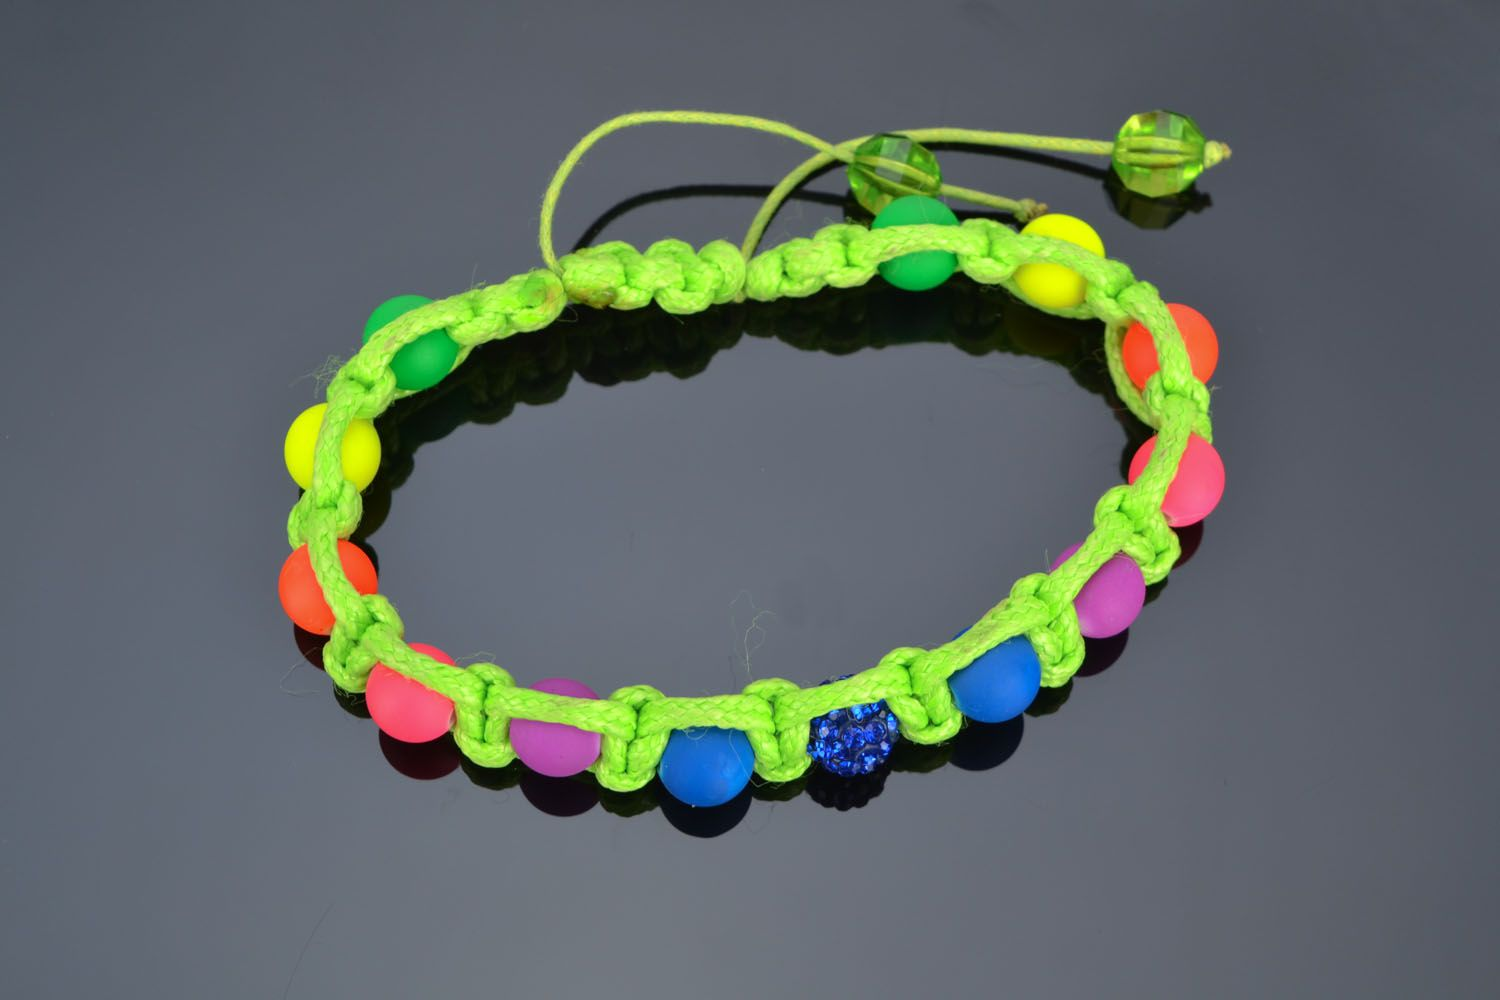 Bracelet woven of colorful beads photo 2